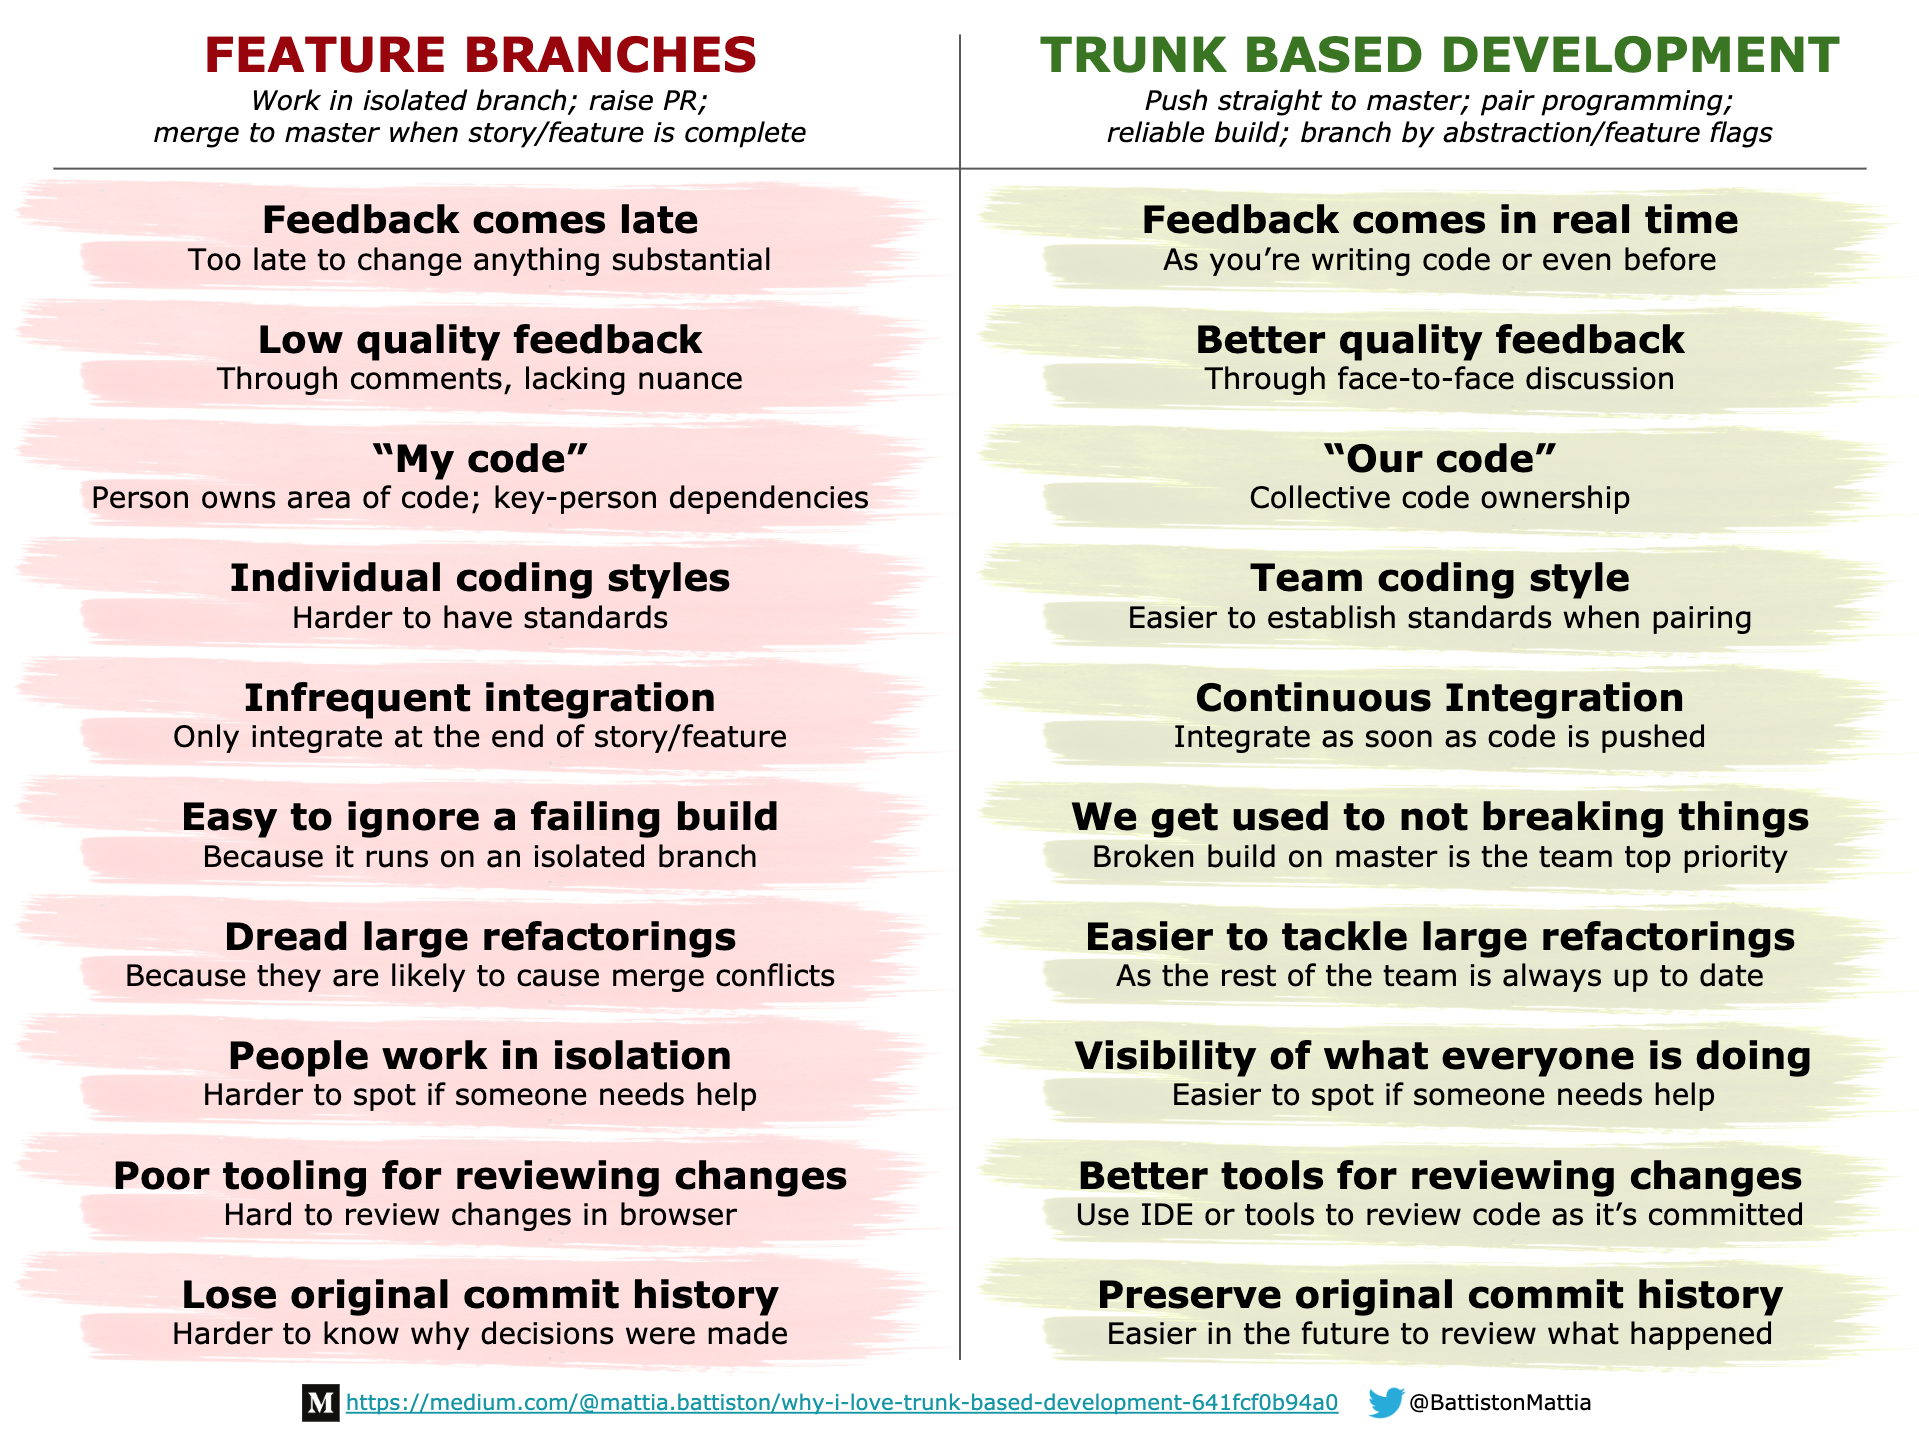 Recap of the benefits of trunk based development over feature branches